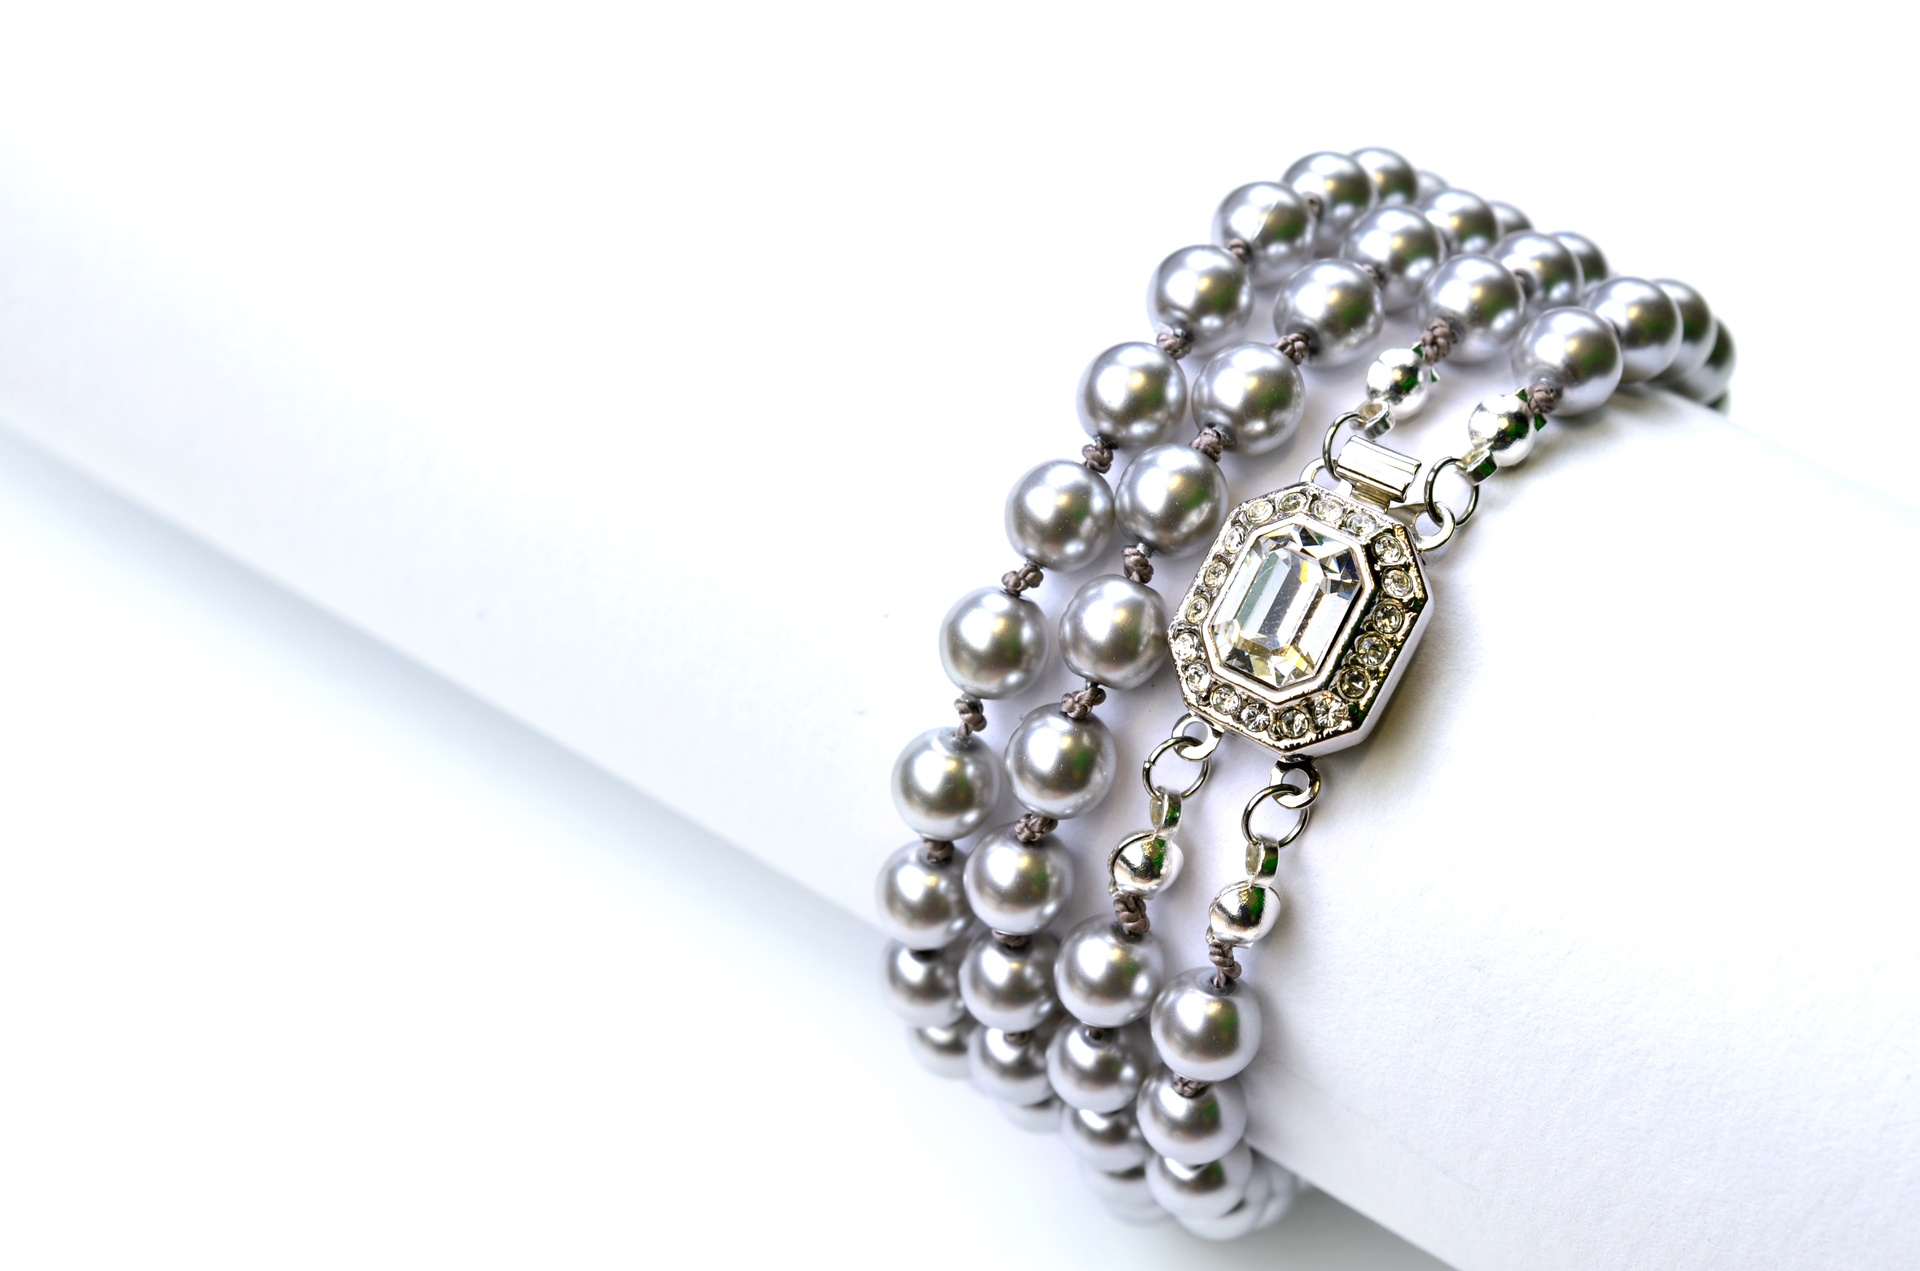 How to Bead Jewelry / Videos Sorted by Beads / Pearl Videos (Czech, Freshwater, Potomac Pearls)